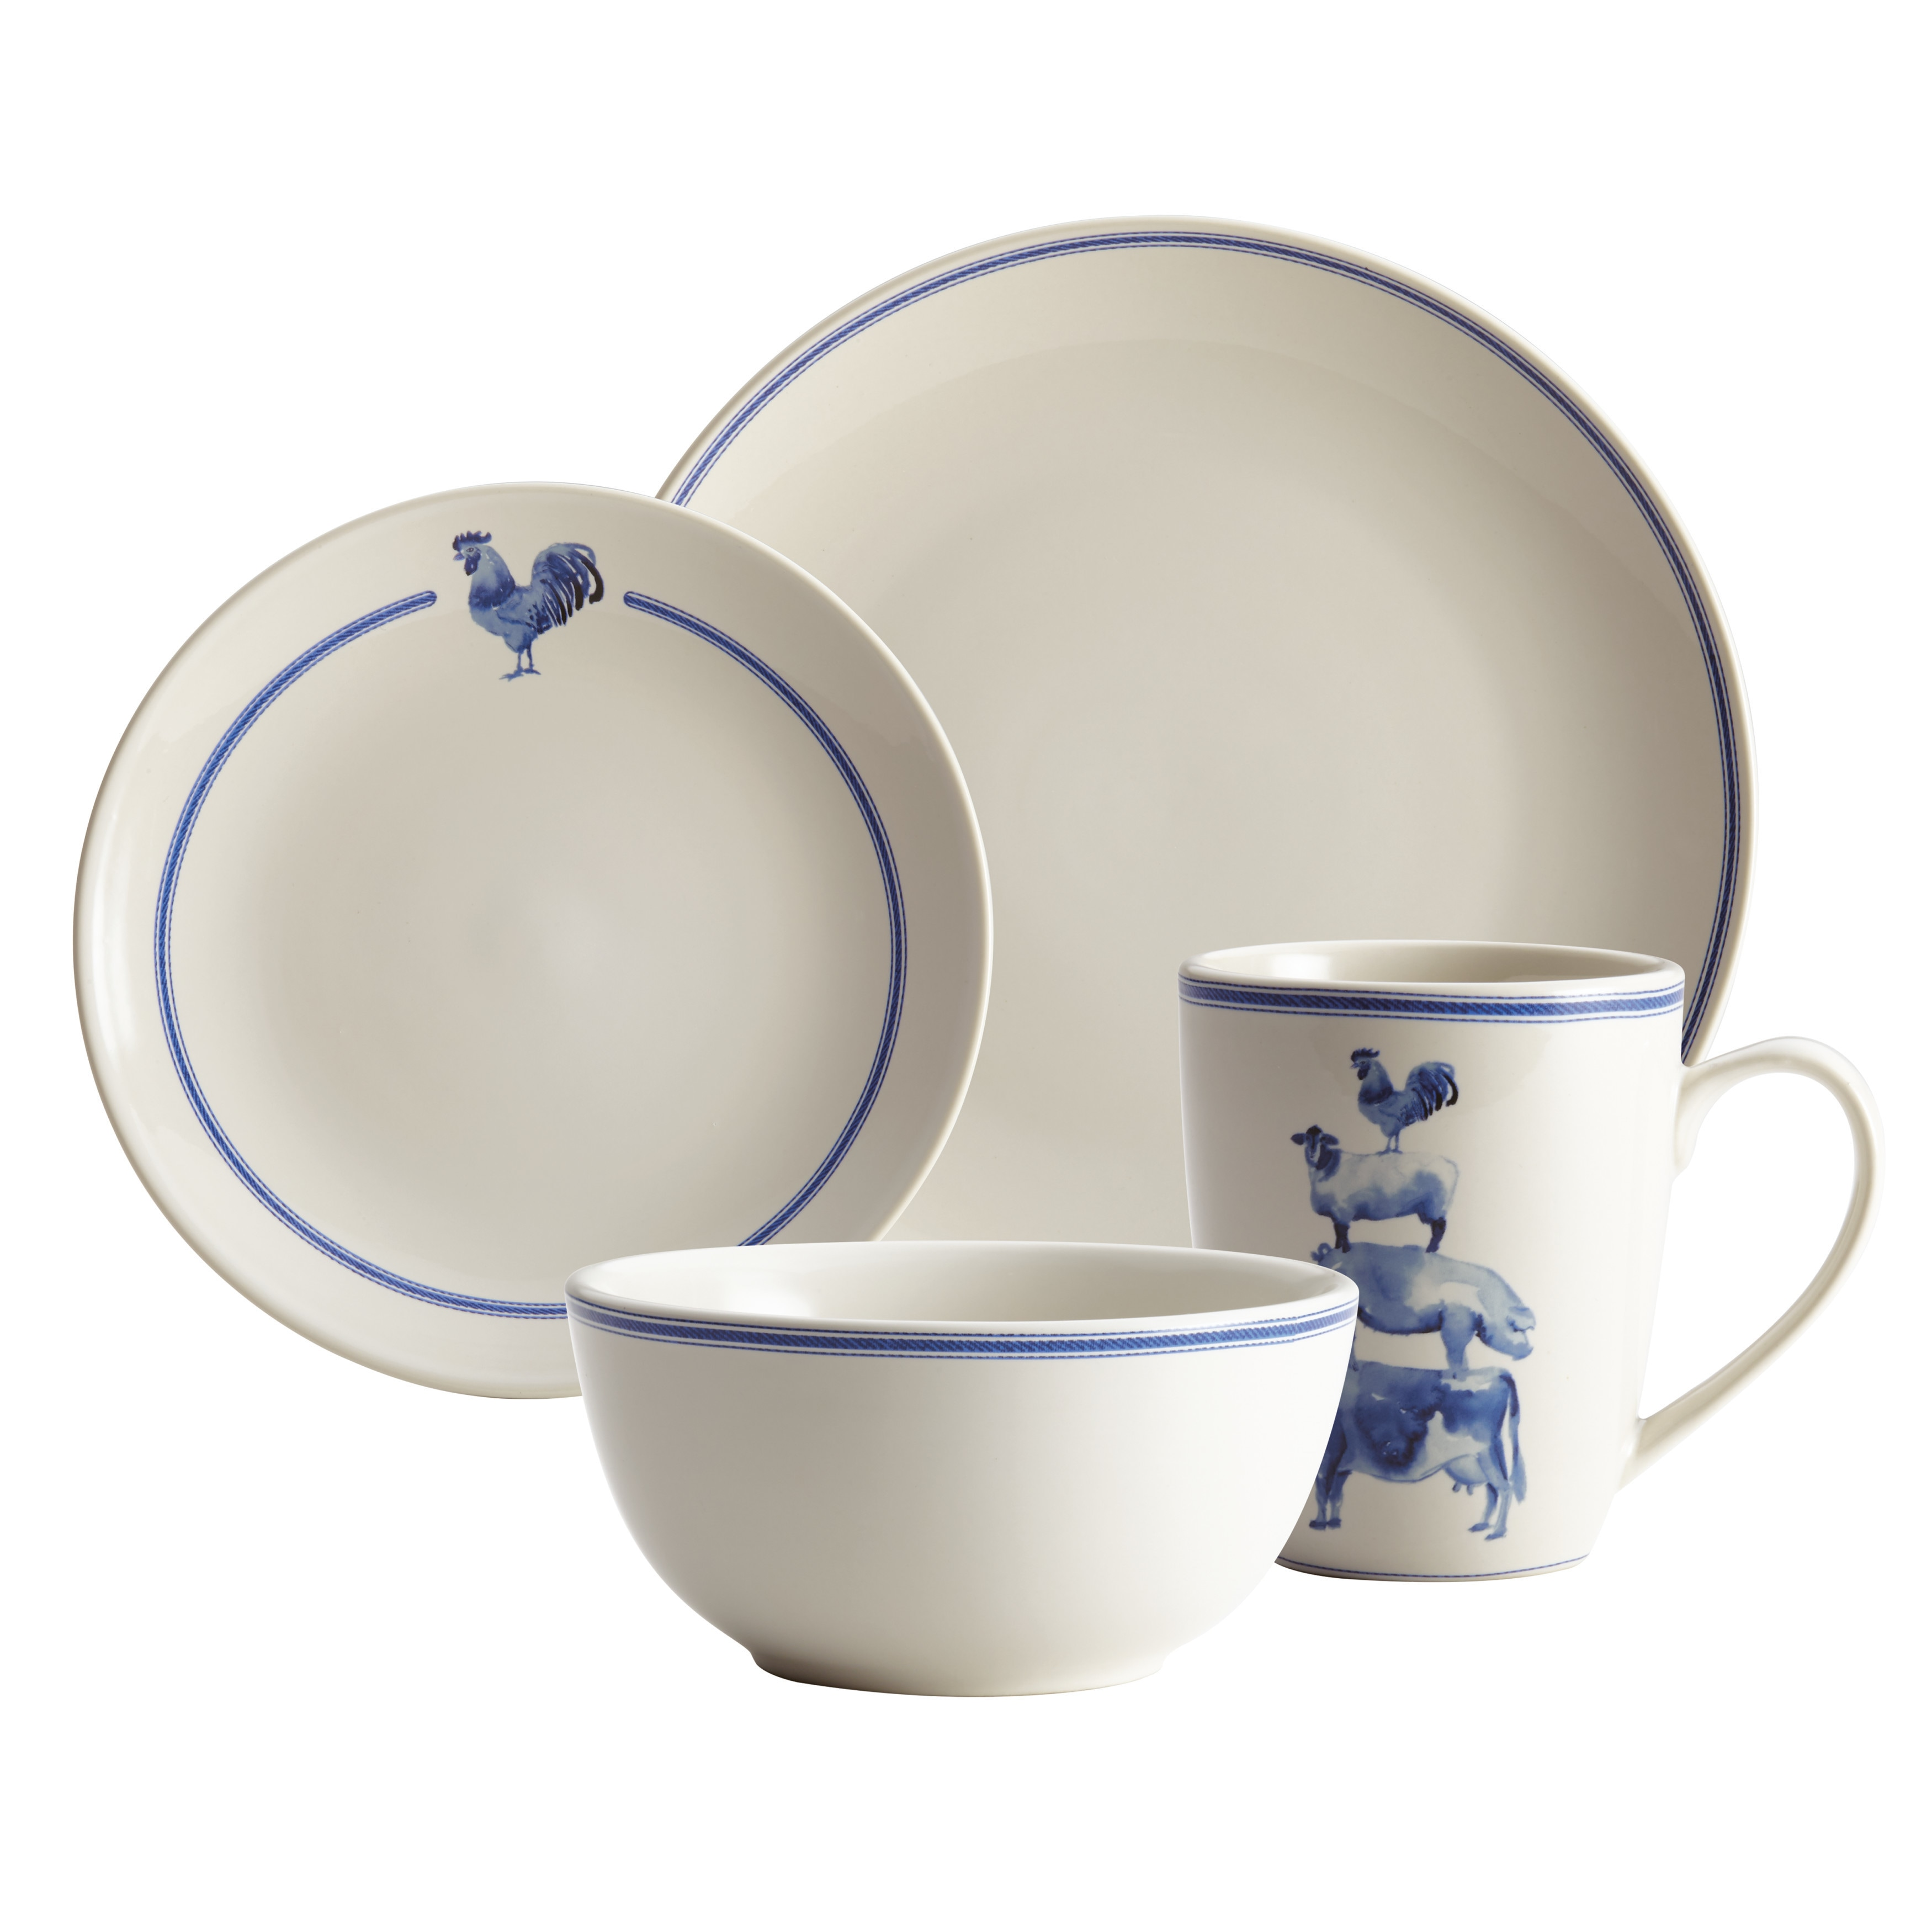 dinnerware find great kitchen dining deals shopping at overstock com